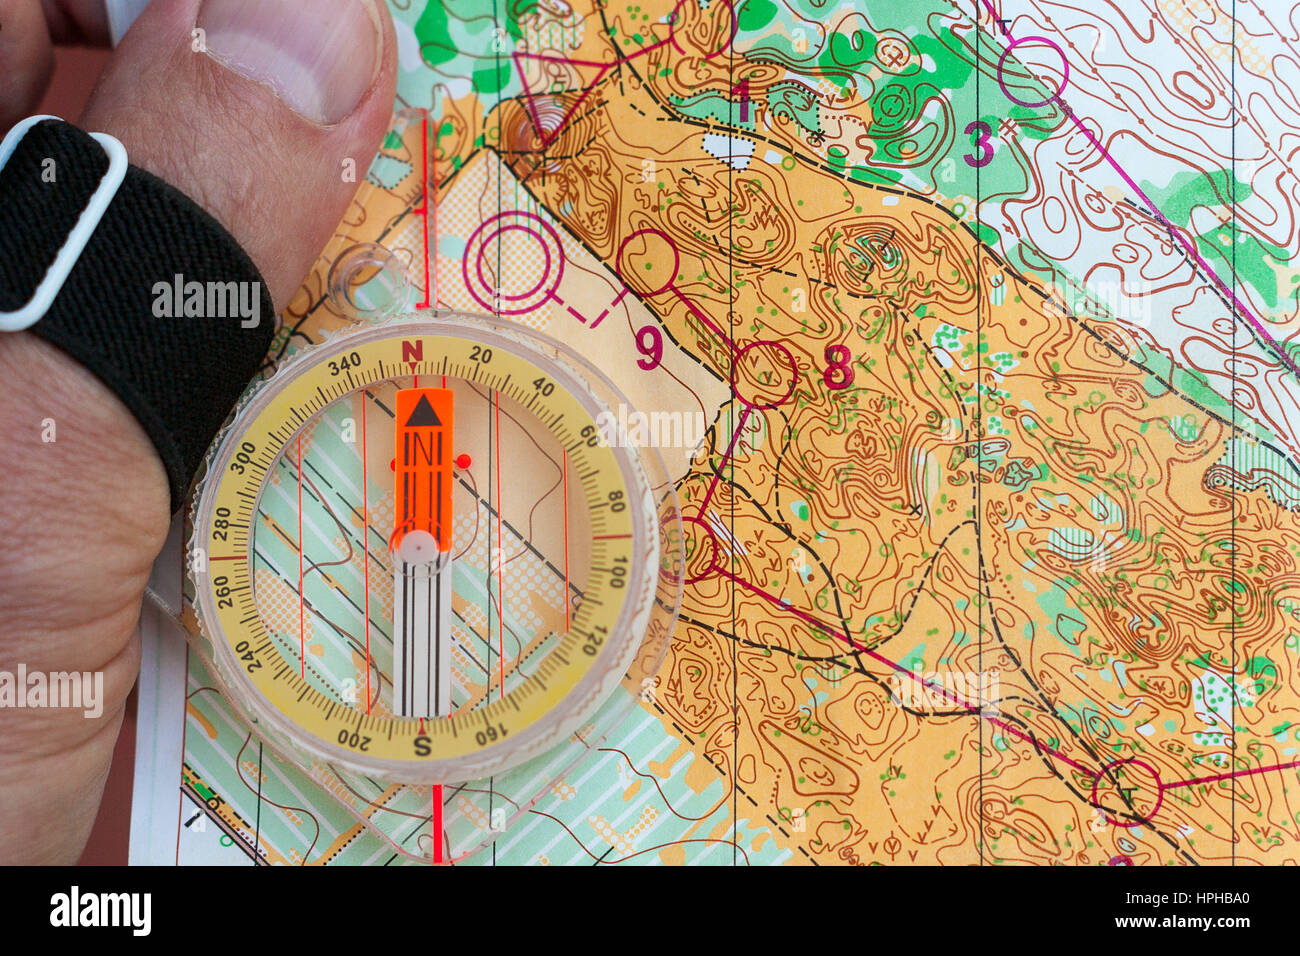 Hand holding a compass on an orienteering map - Stock Image